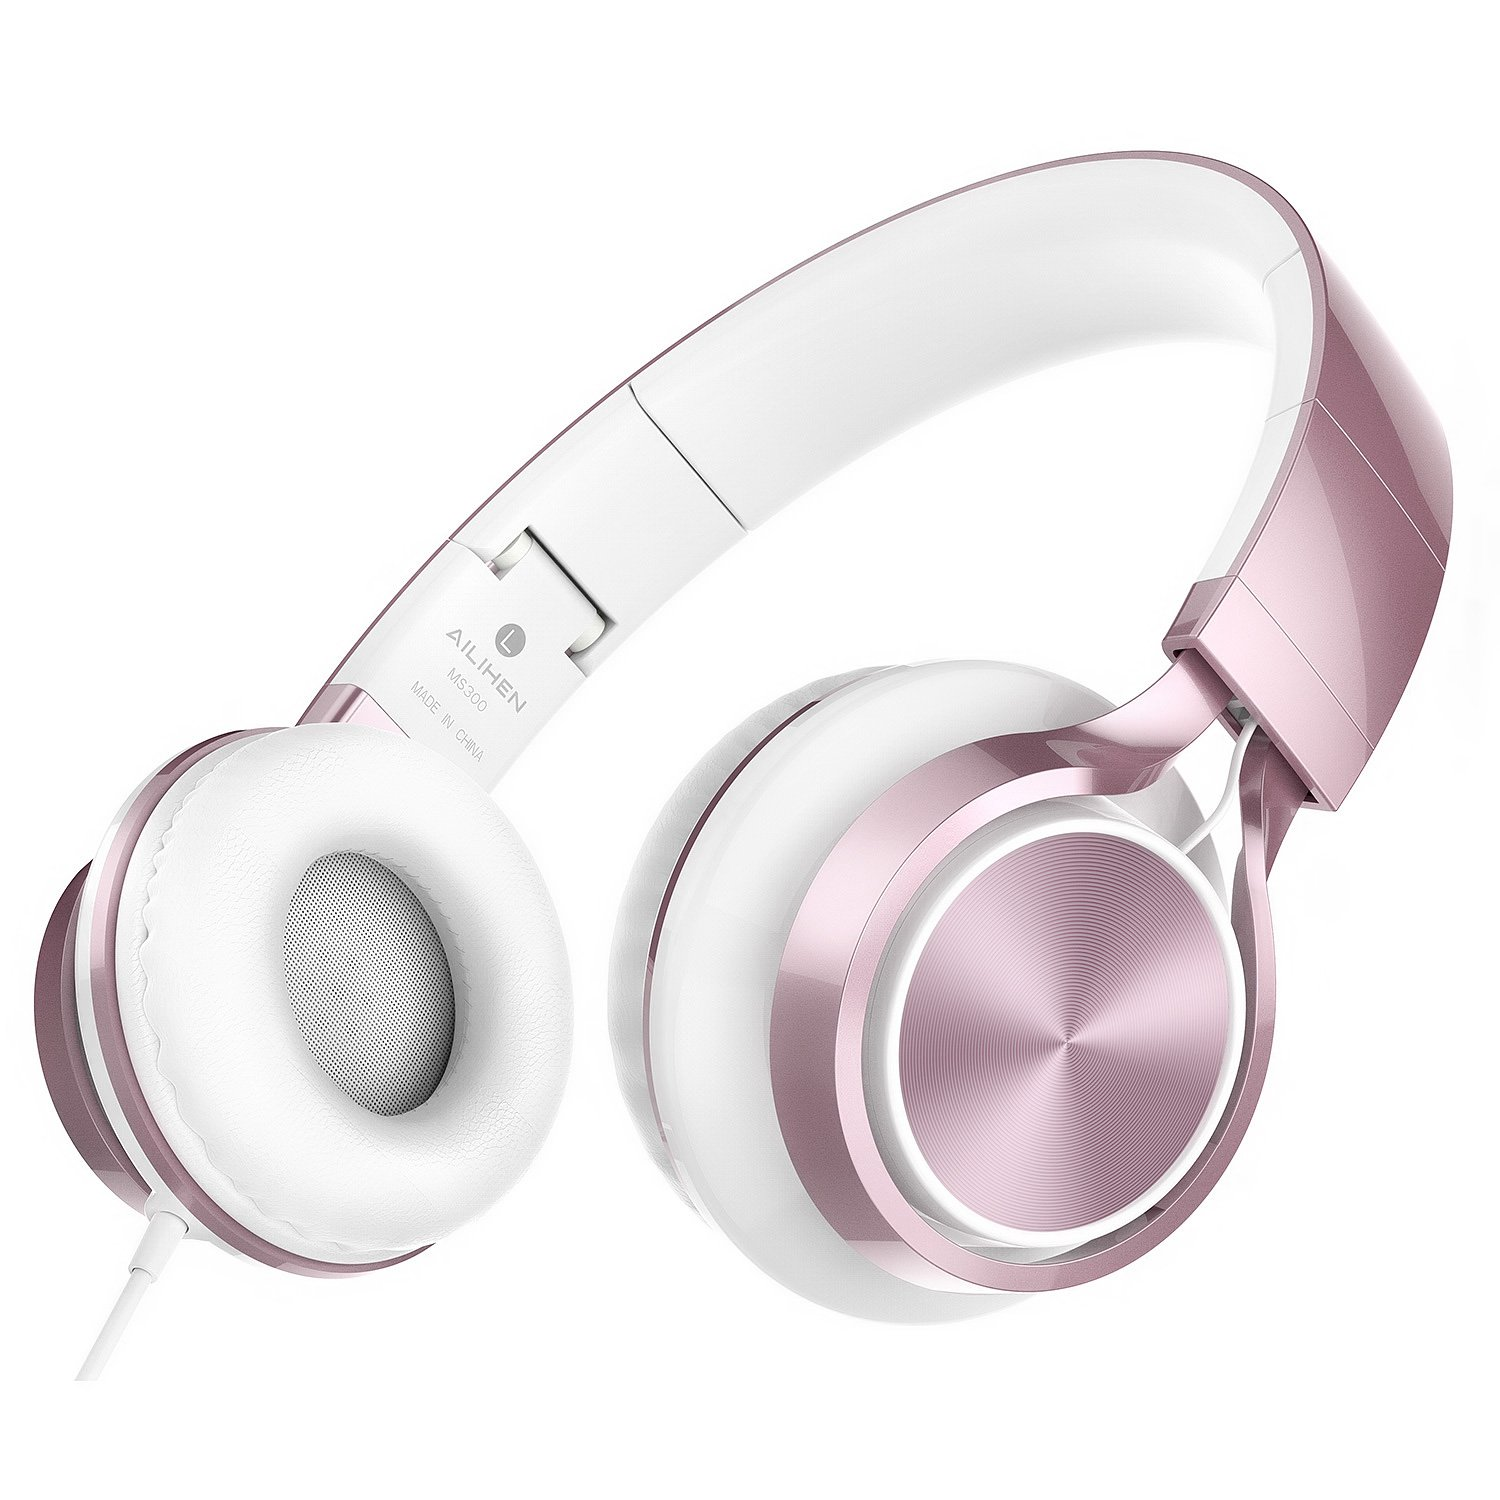 AILIHEN MS300 Wired Headphones Stereo Foldable Headset for iOS Android Smartphone Laptop Tablet PC Computer Rose Gold